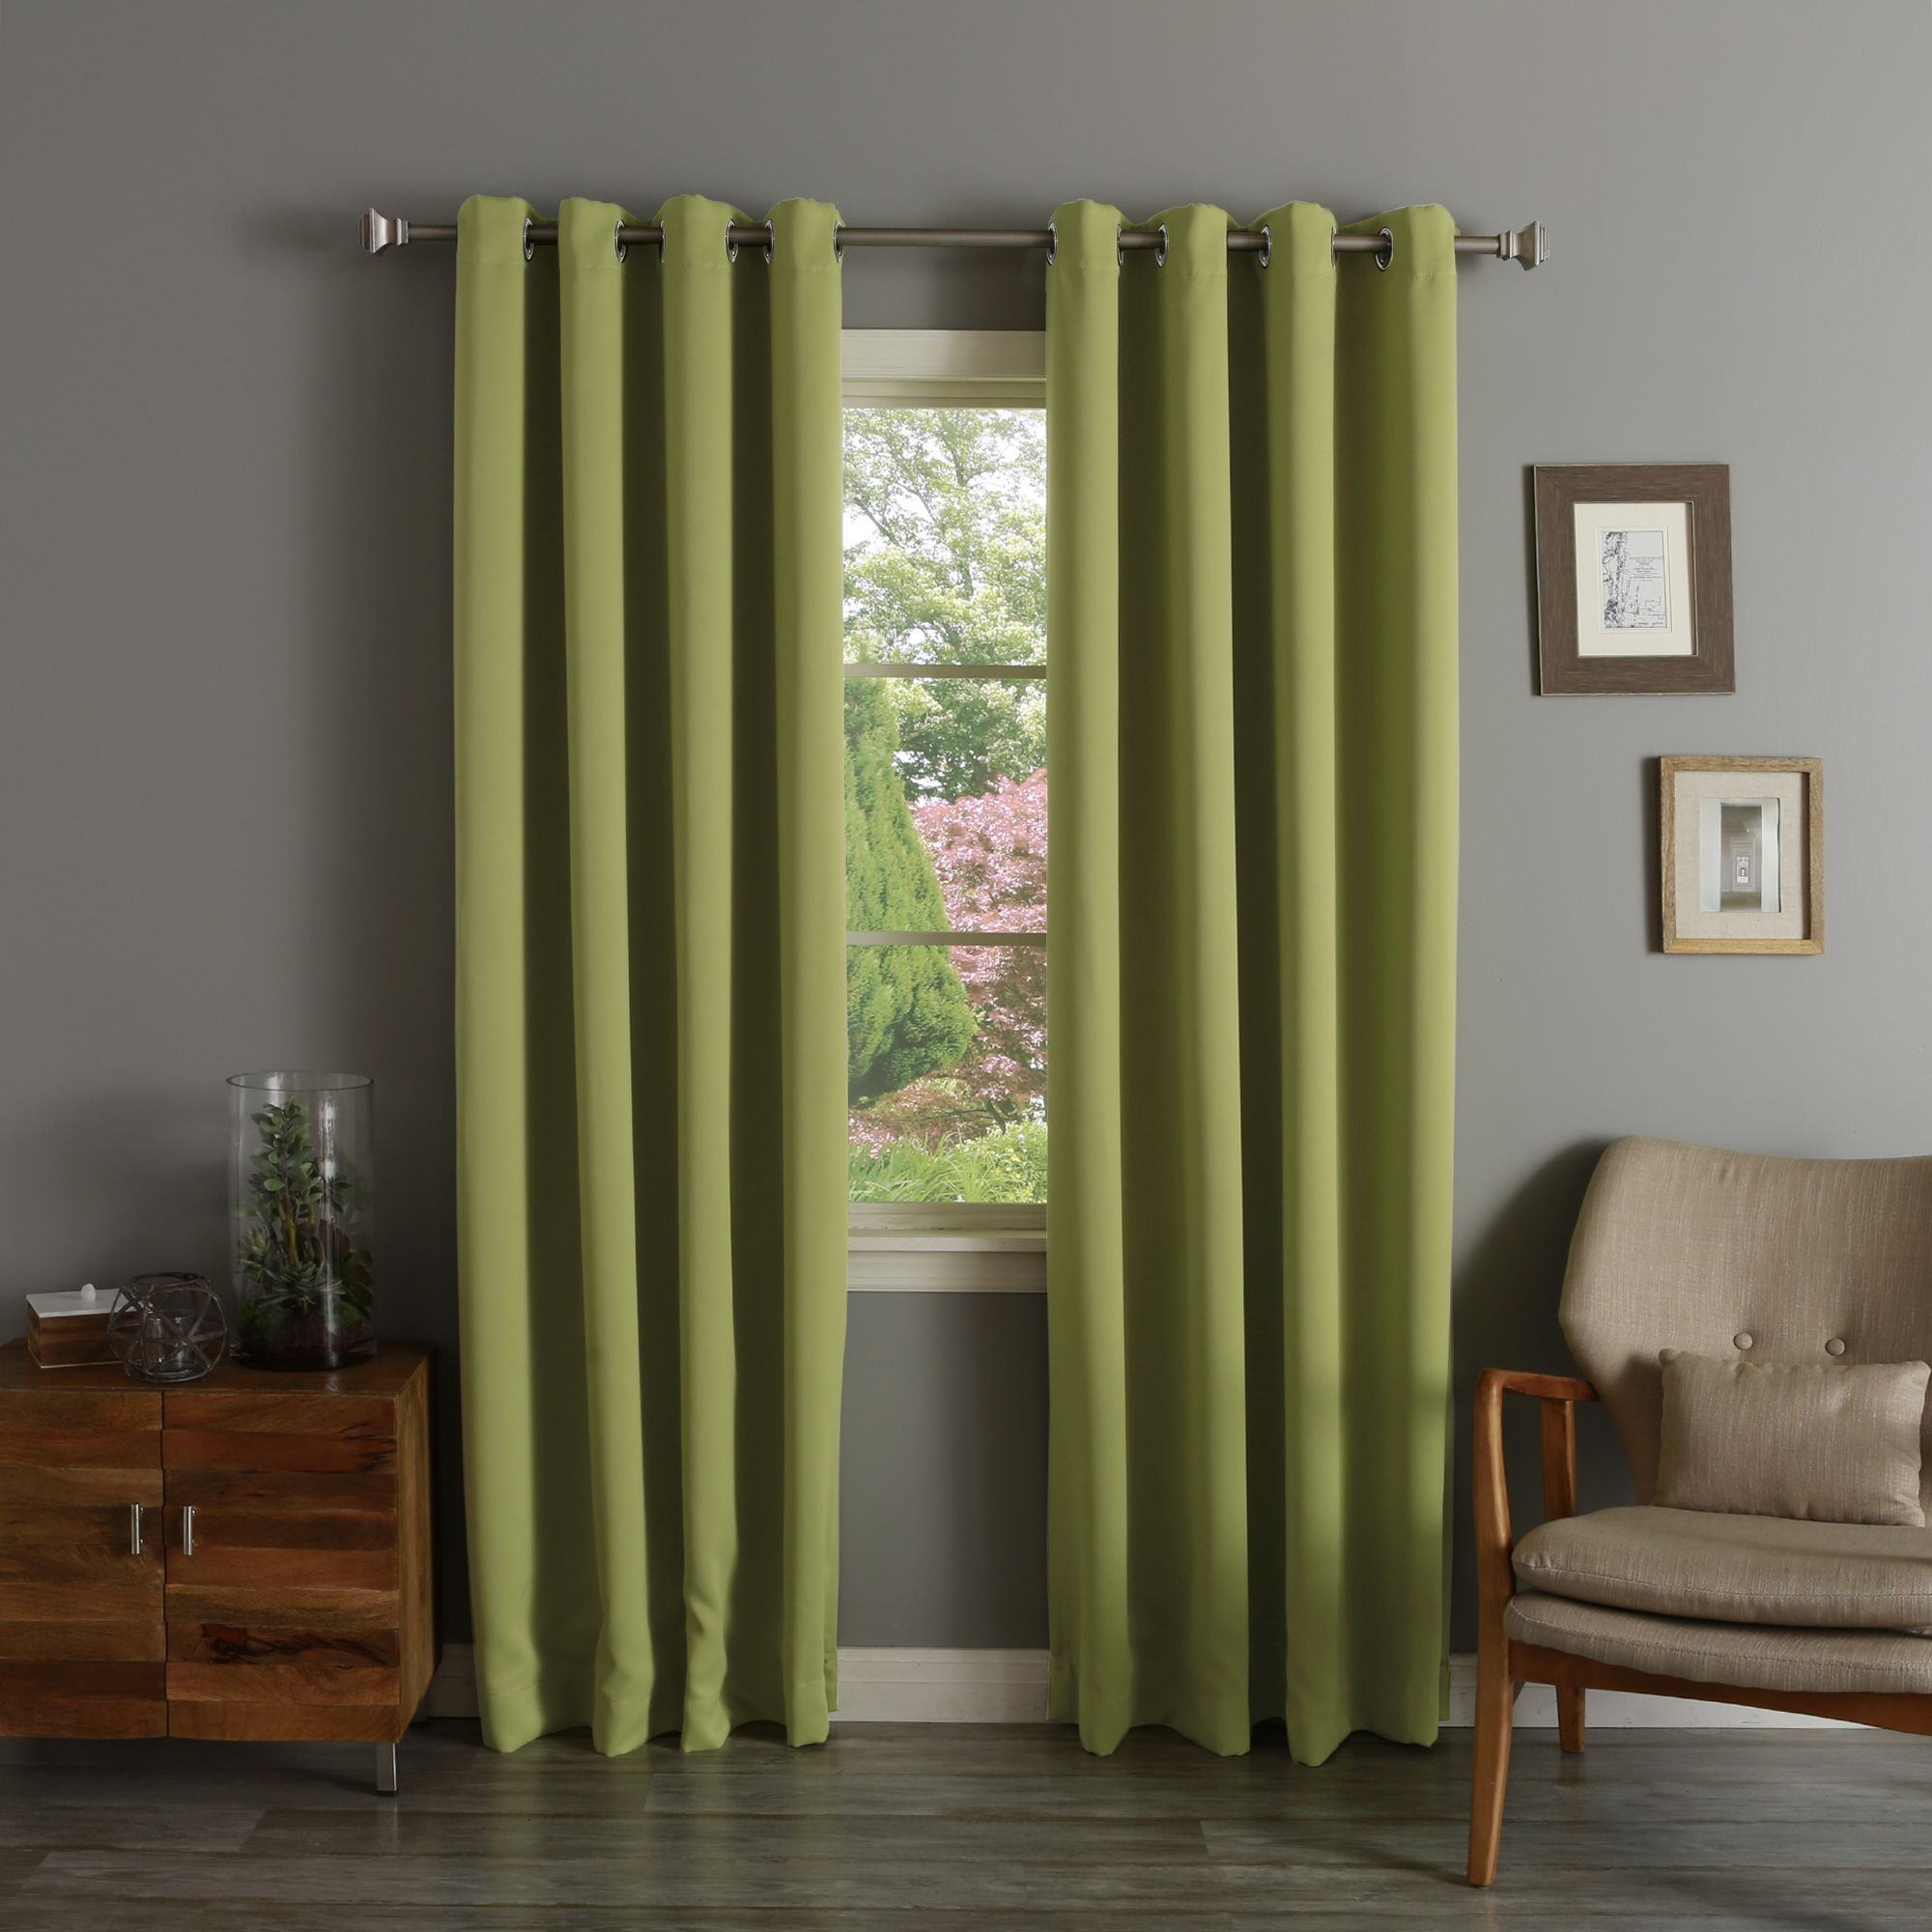 Aurora Home Thermal Insulated 108 Inch Blackout Curtain